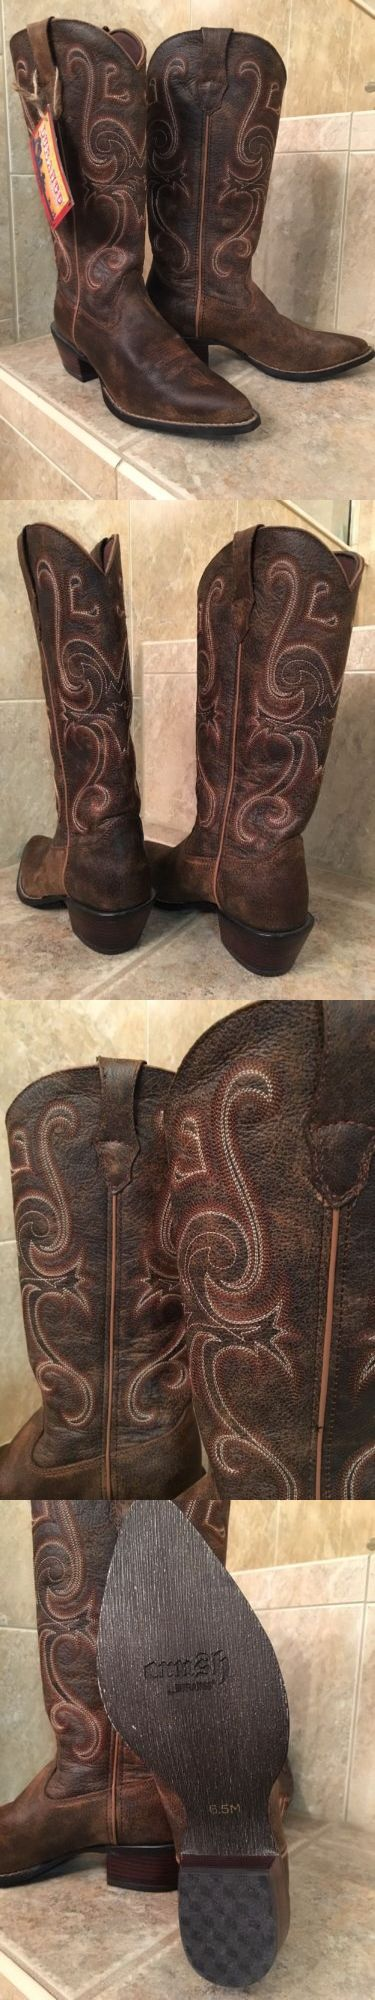 Western Boots 159002: Nwt Leather Crush Durango Boots Women S Size 6.5 -> BUY IT NOW ONLY: $59.99 on eBay!